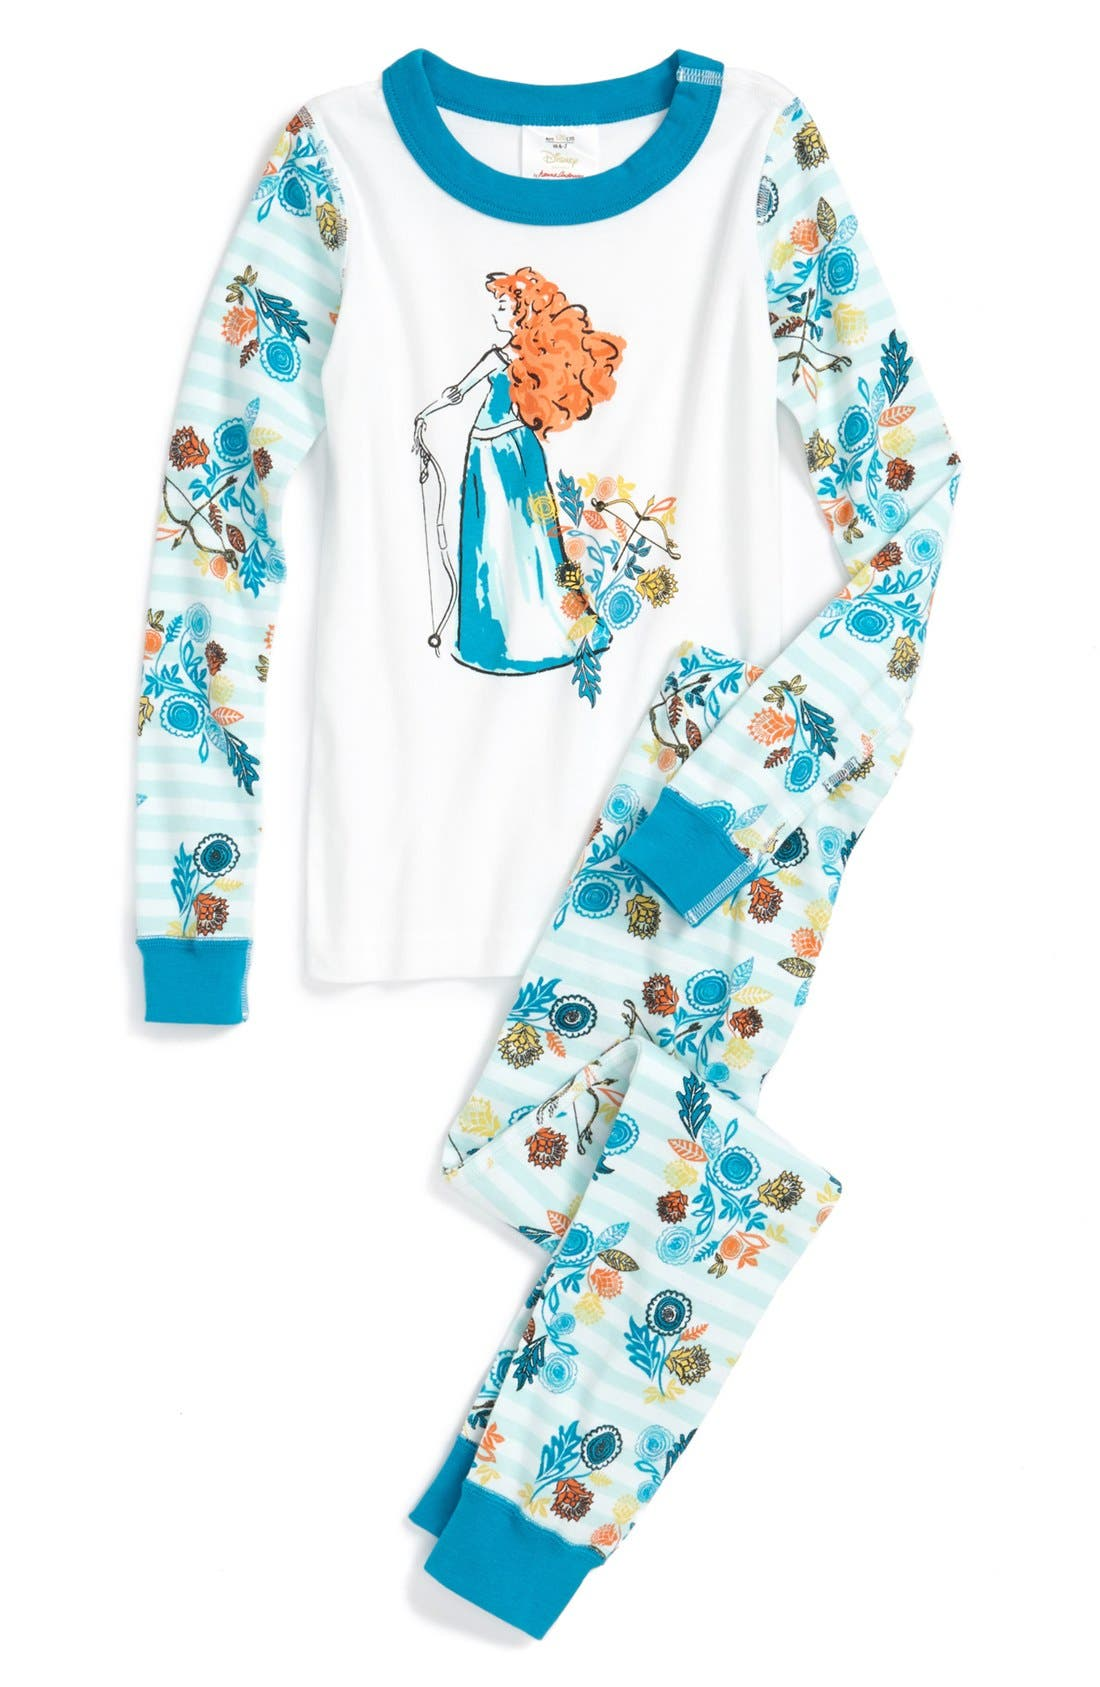 Main Image - Hanna Andersson 'Disney™ Princess - Merida' Two-Piece Fitted Pajamas (Toddler Girls)